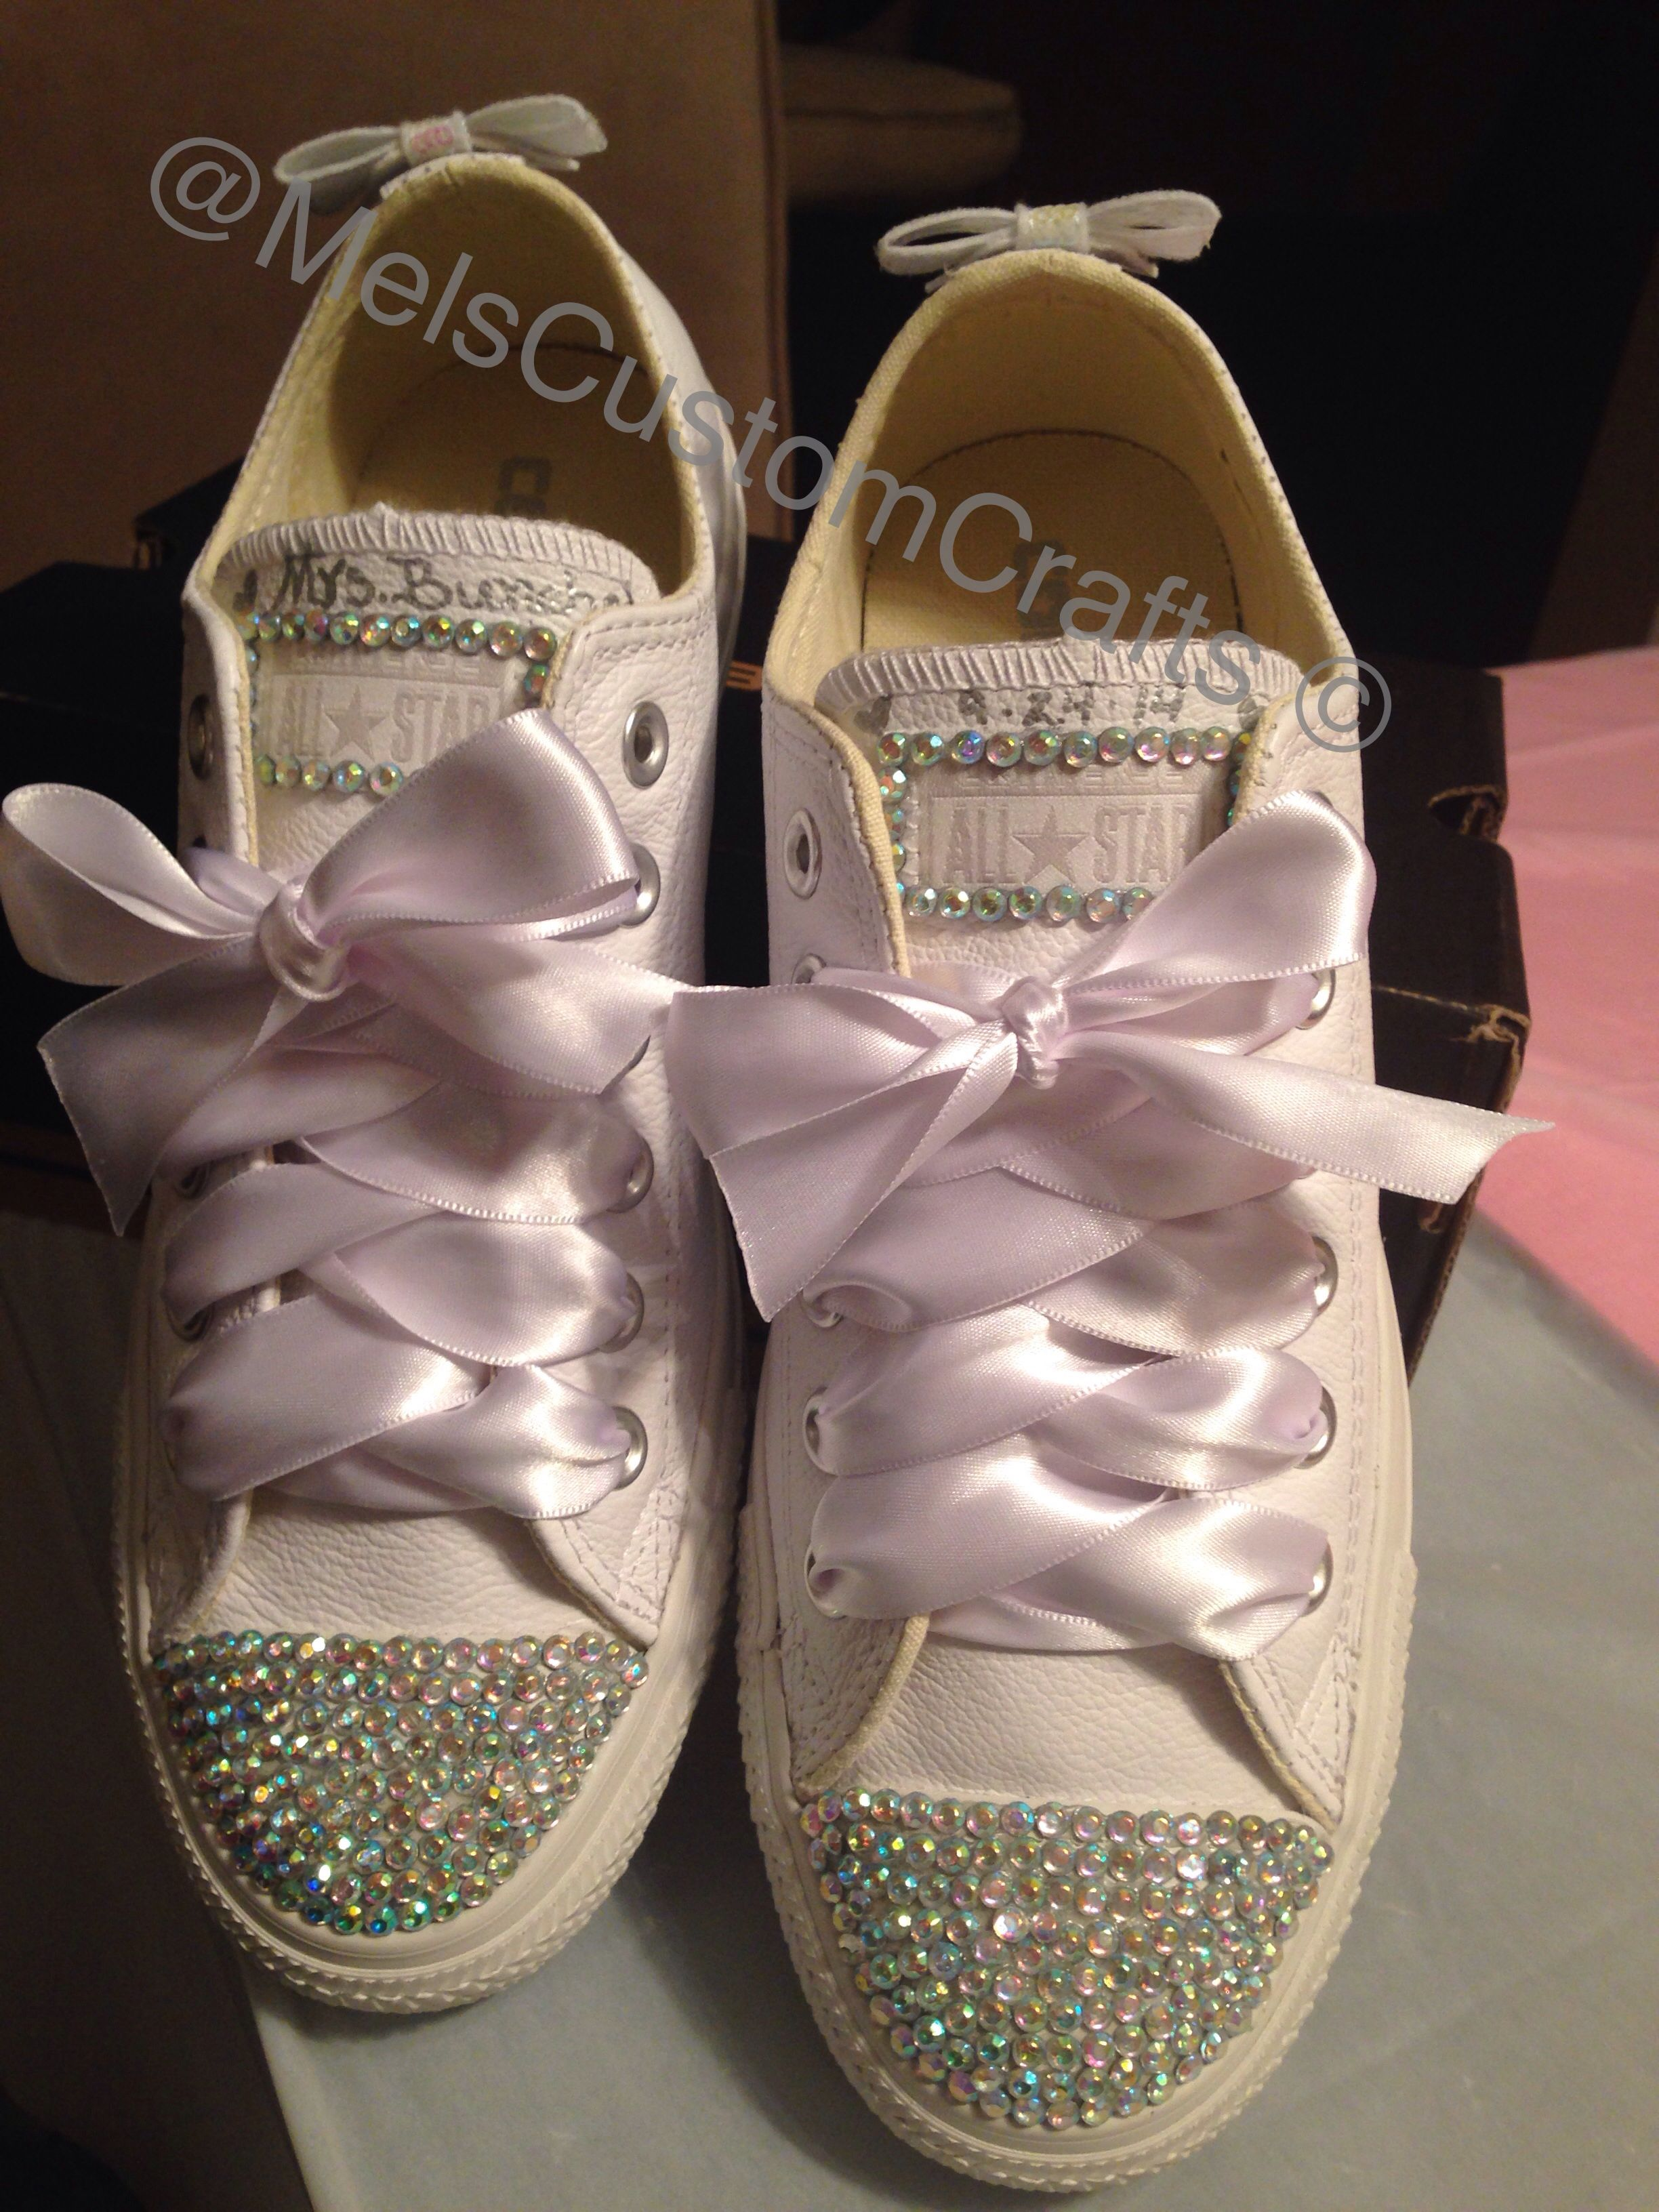 Bridal sneakers. White leather converse with rhinestone